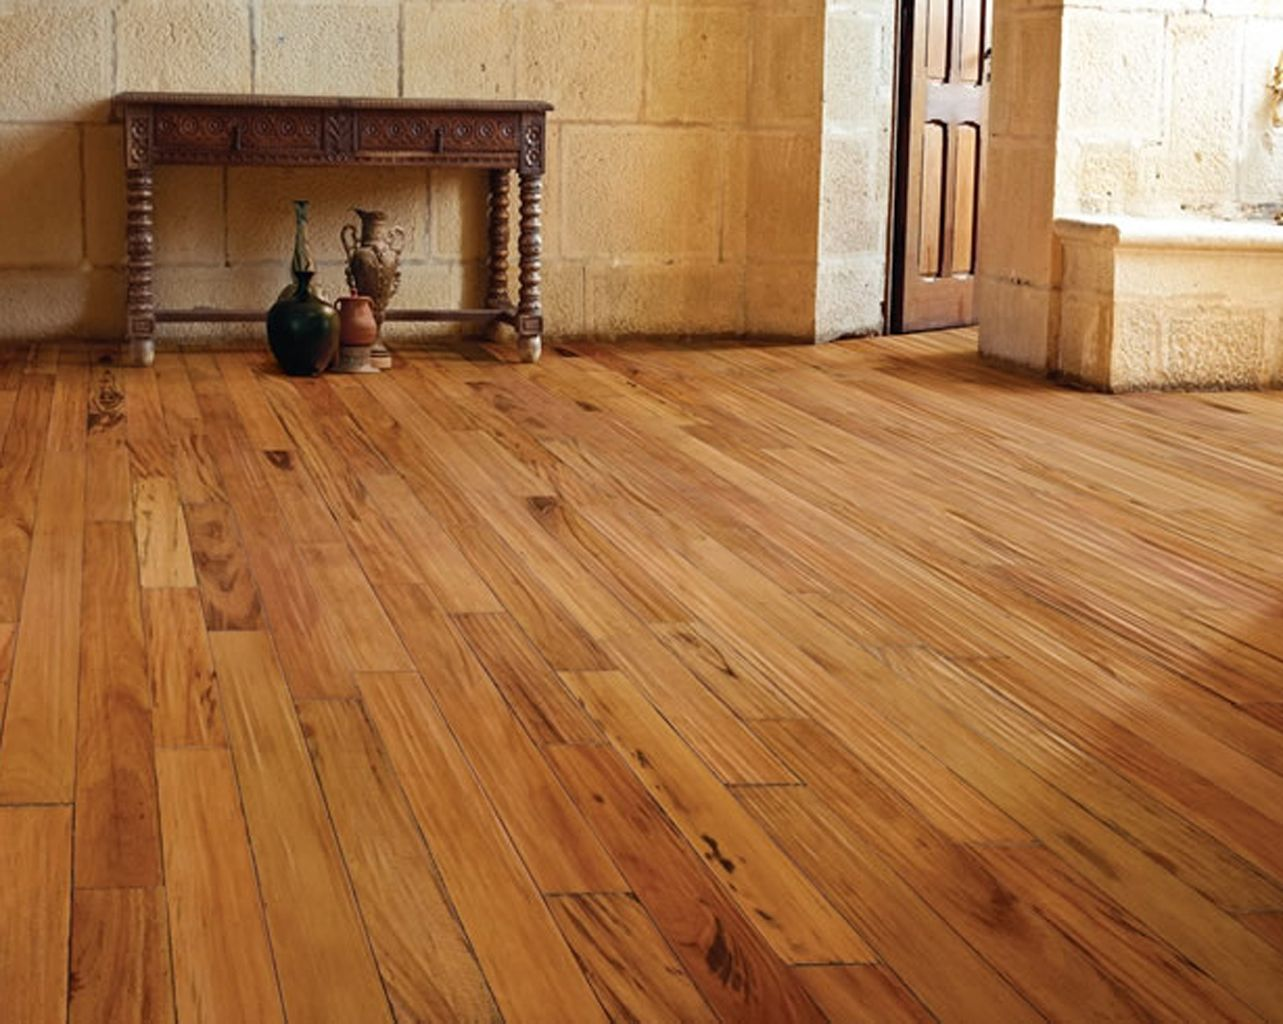 There are different types of flooring that you can use for